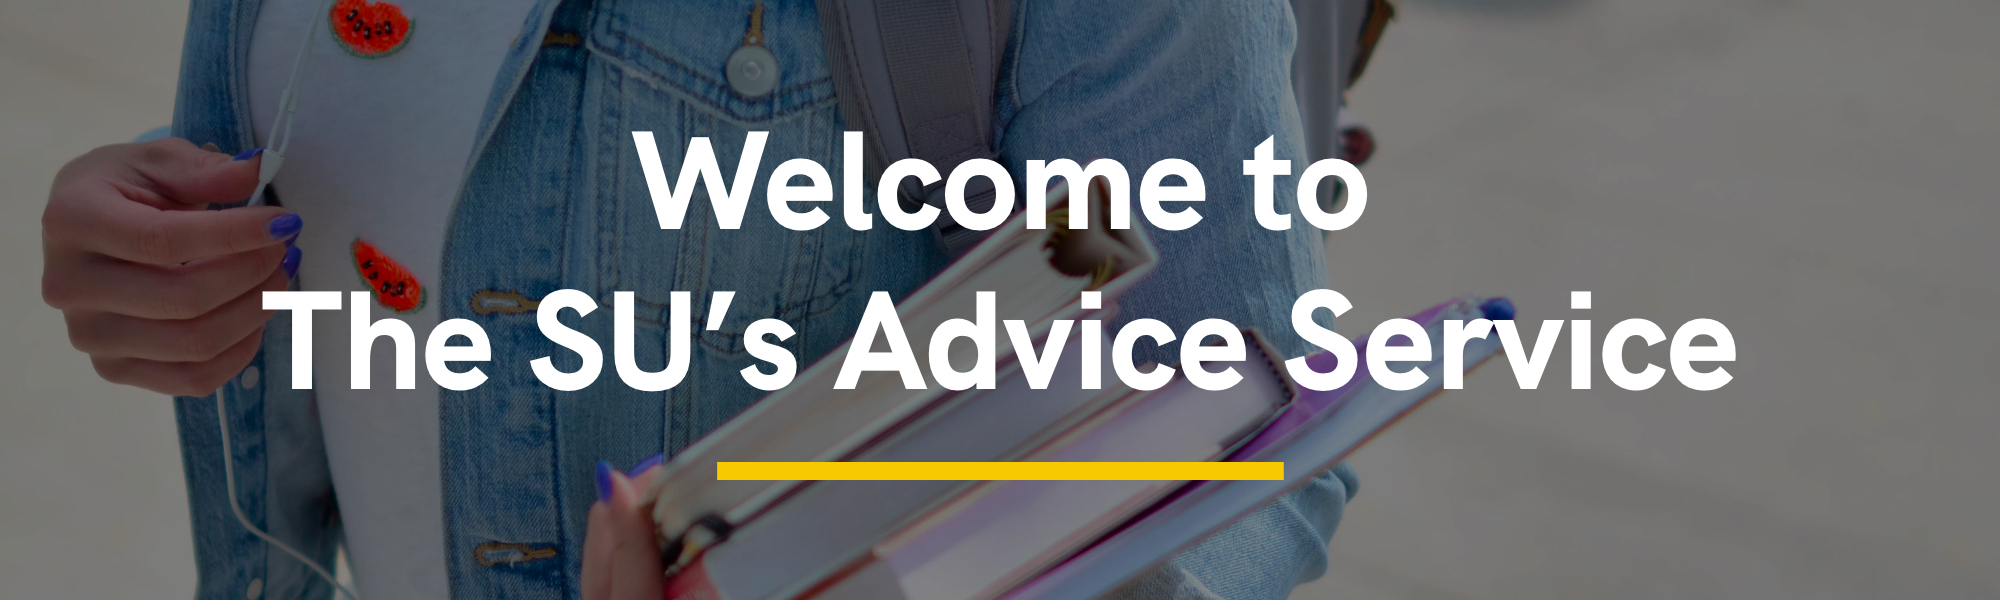 Welcome to The SU's Advice Service